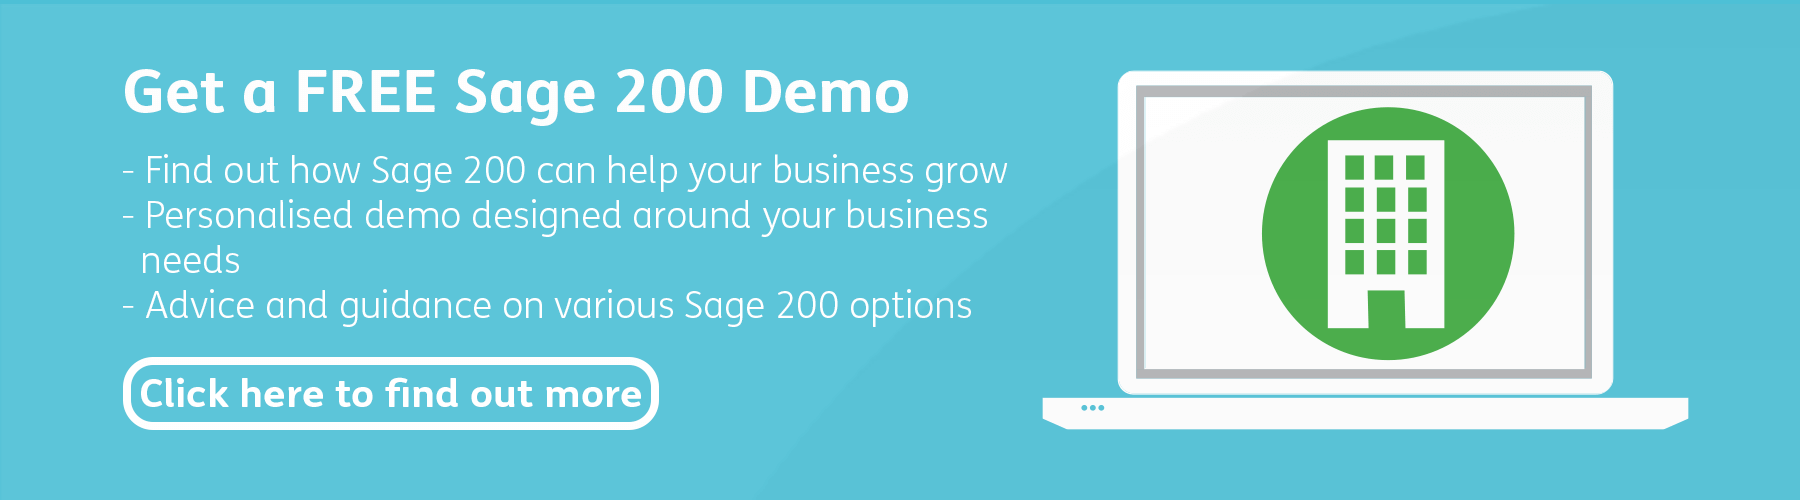 Sage 200 Pricing - How much does Sage 200 Cost? - Sage UK